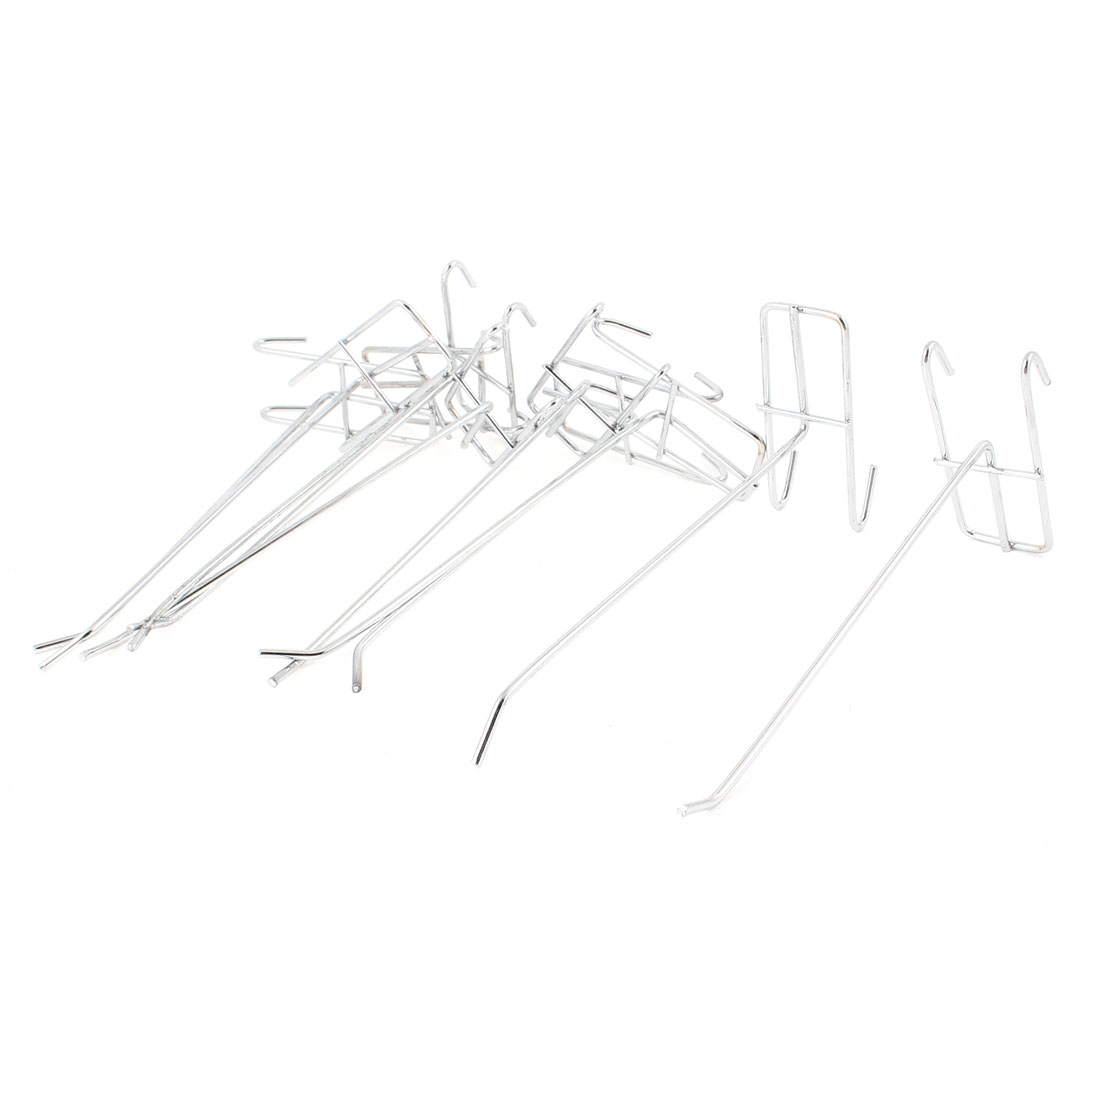 "10 Pcs Supermarket Store Slat Wall Metal Bracket Display Hooks 5.5"" Length"